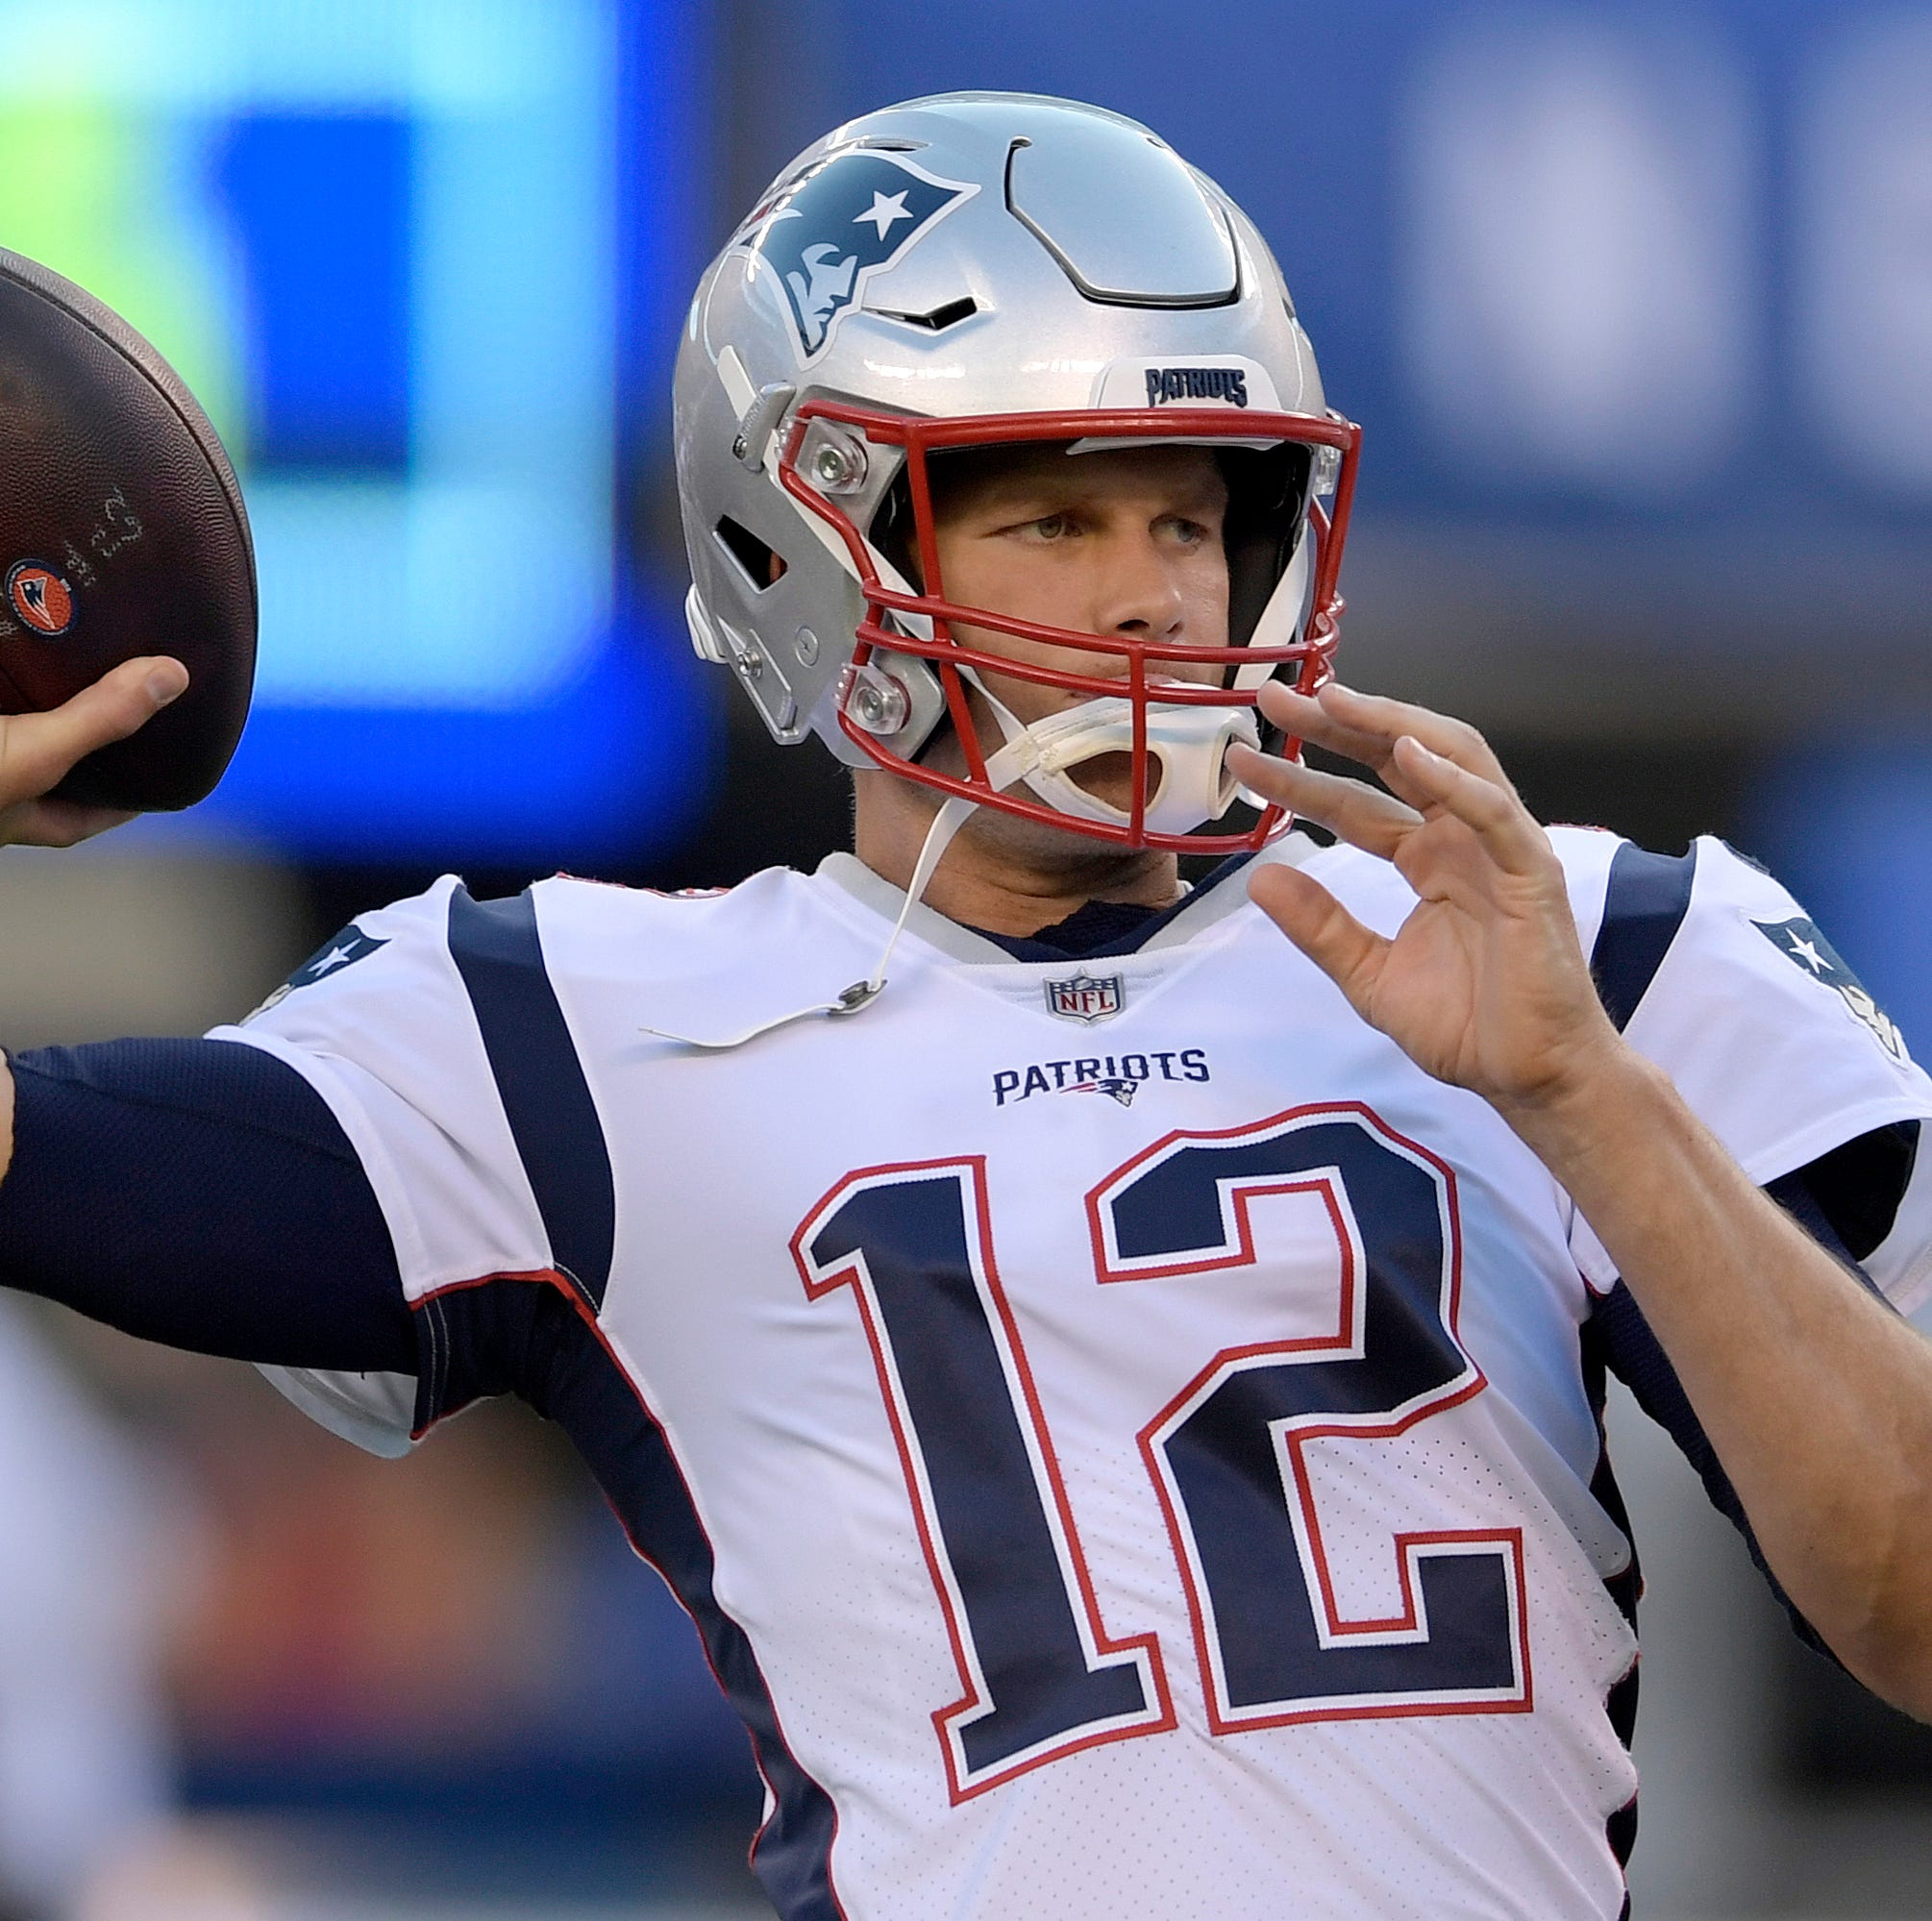 Wednesday's NFL: Five more years still Brady's goal